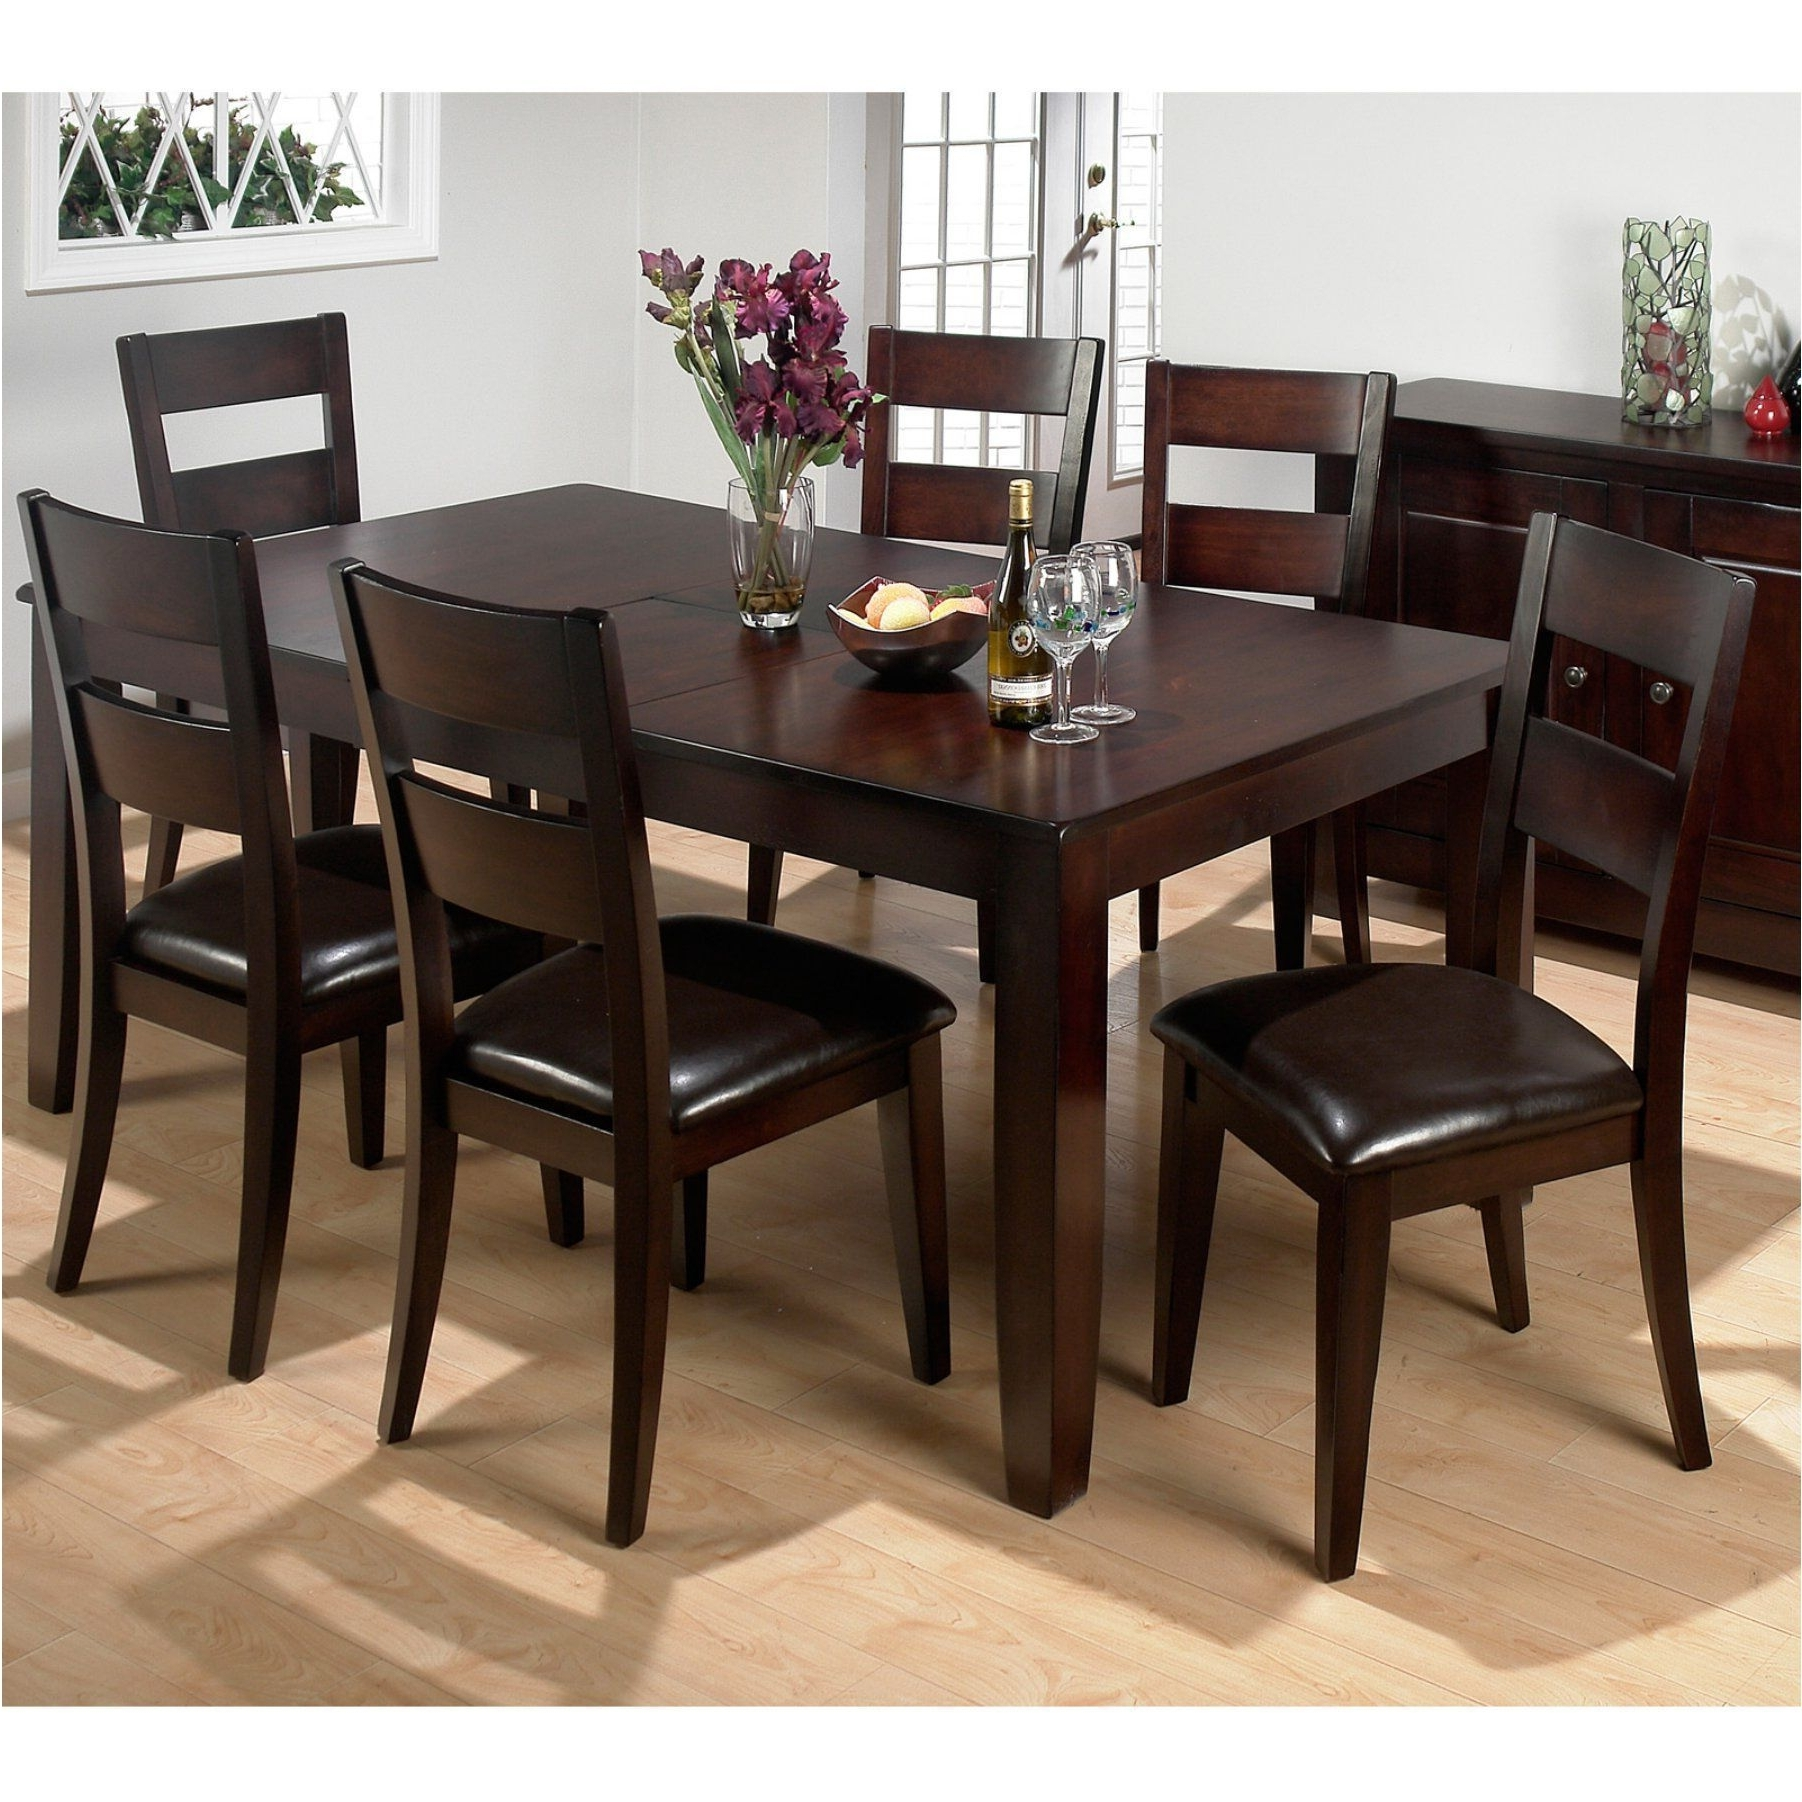 Preferred Breathtaking Hampshire Oak Dining Set Dining Furniture B – Cheap Throughout Cheap Dining Tables (View 4 of 25)